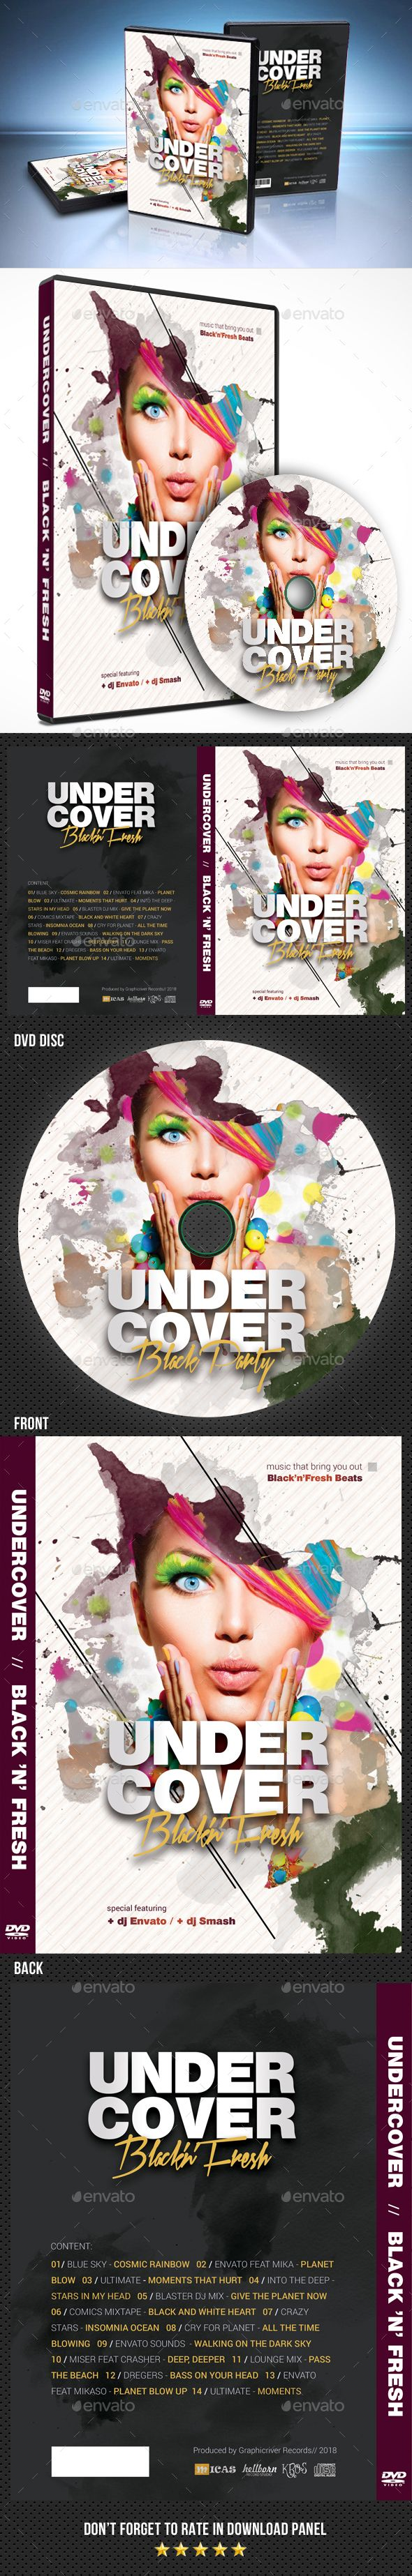 undercover dvd cover design template psd download here https